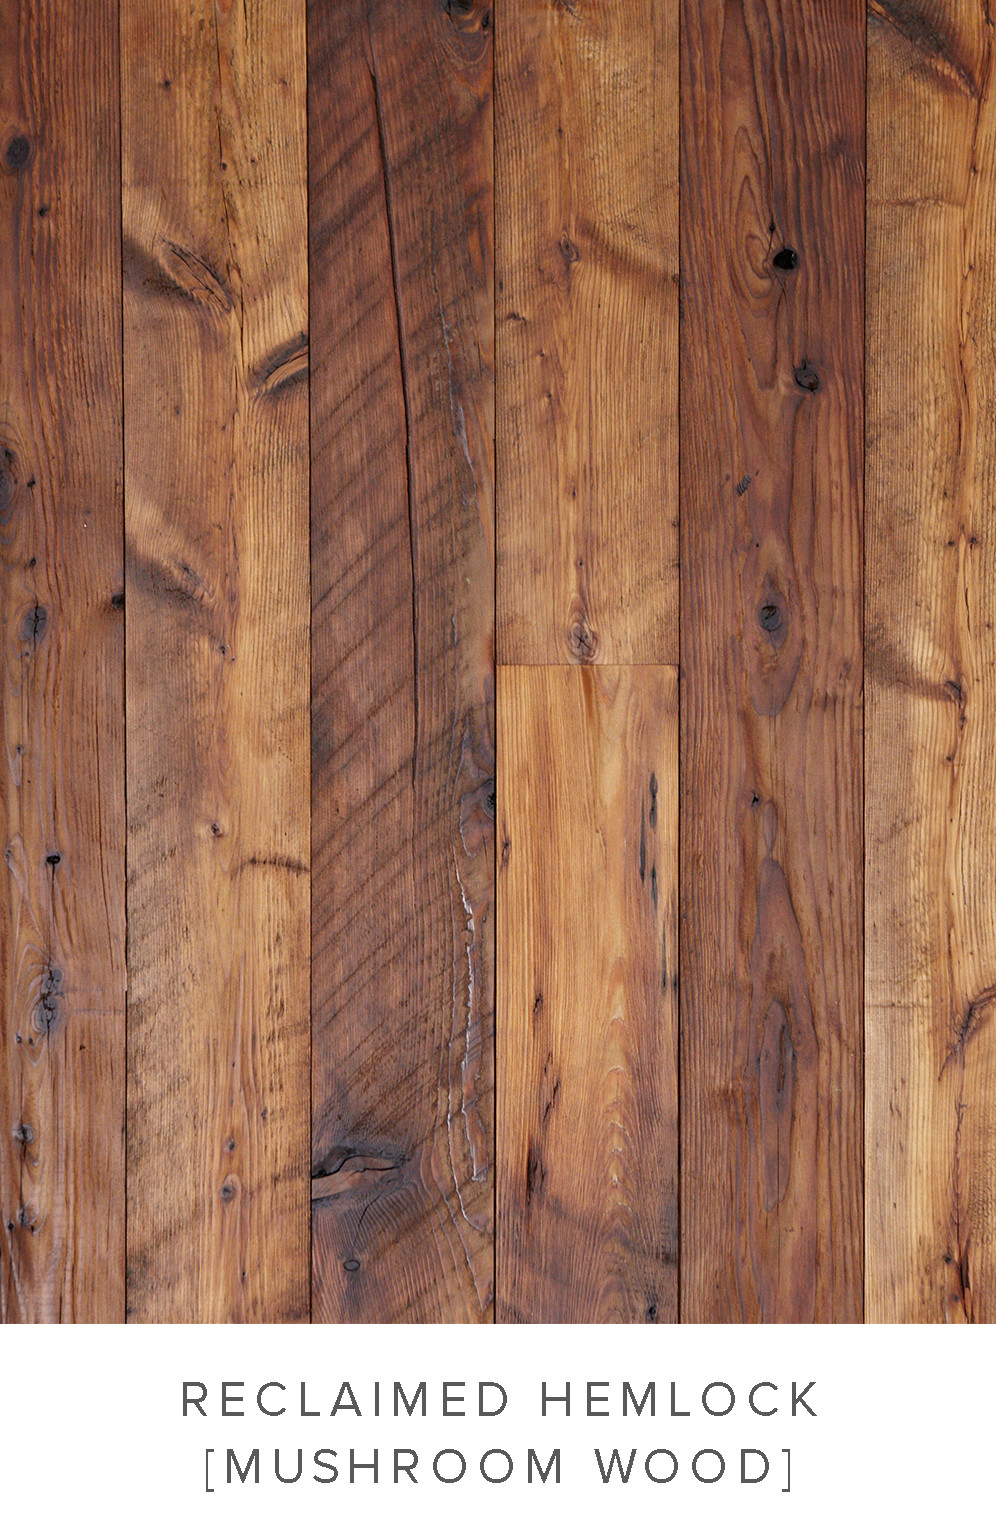 how to stain hardwood floors video of extensive range of reclaimed wood flooring all under one roof at the pertaining to reclaimed hemlock mushroom wood